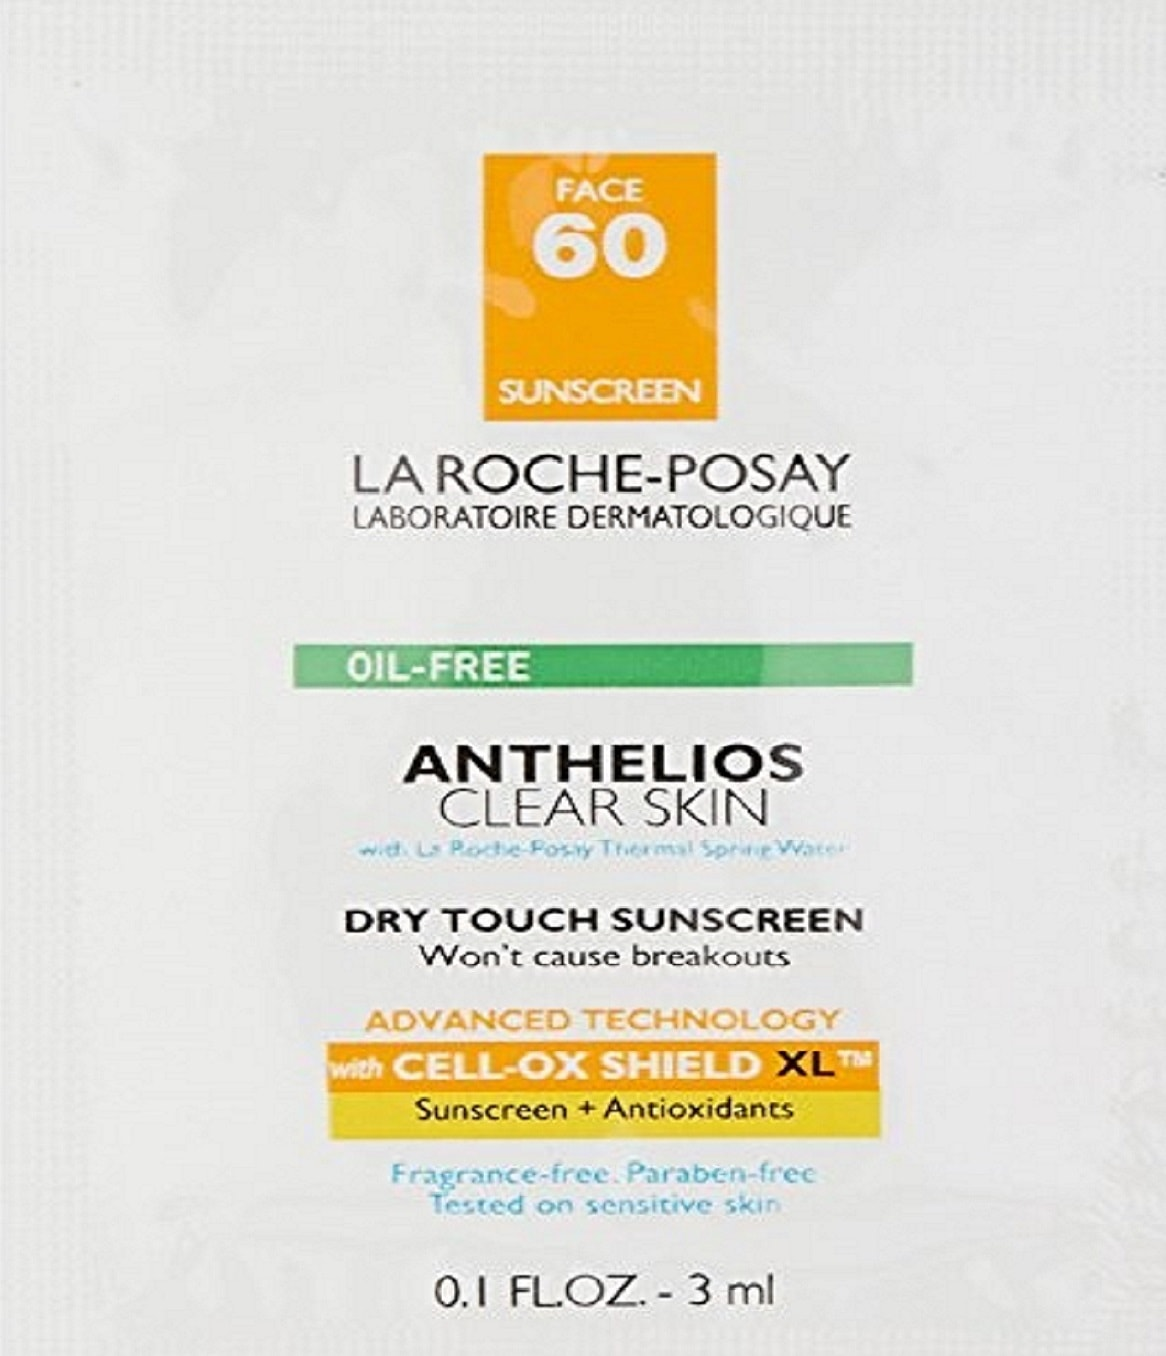 La Roche-Posay Anthelios Clear Skin Face Sunscreen